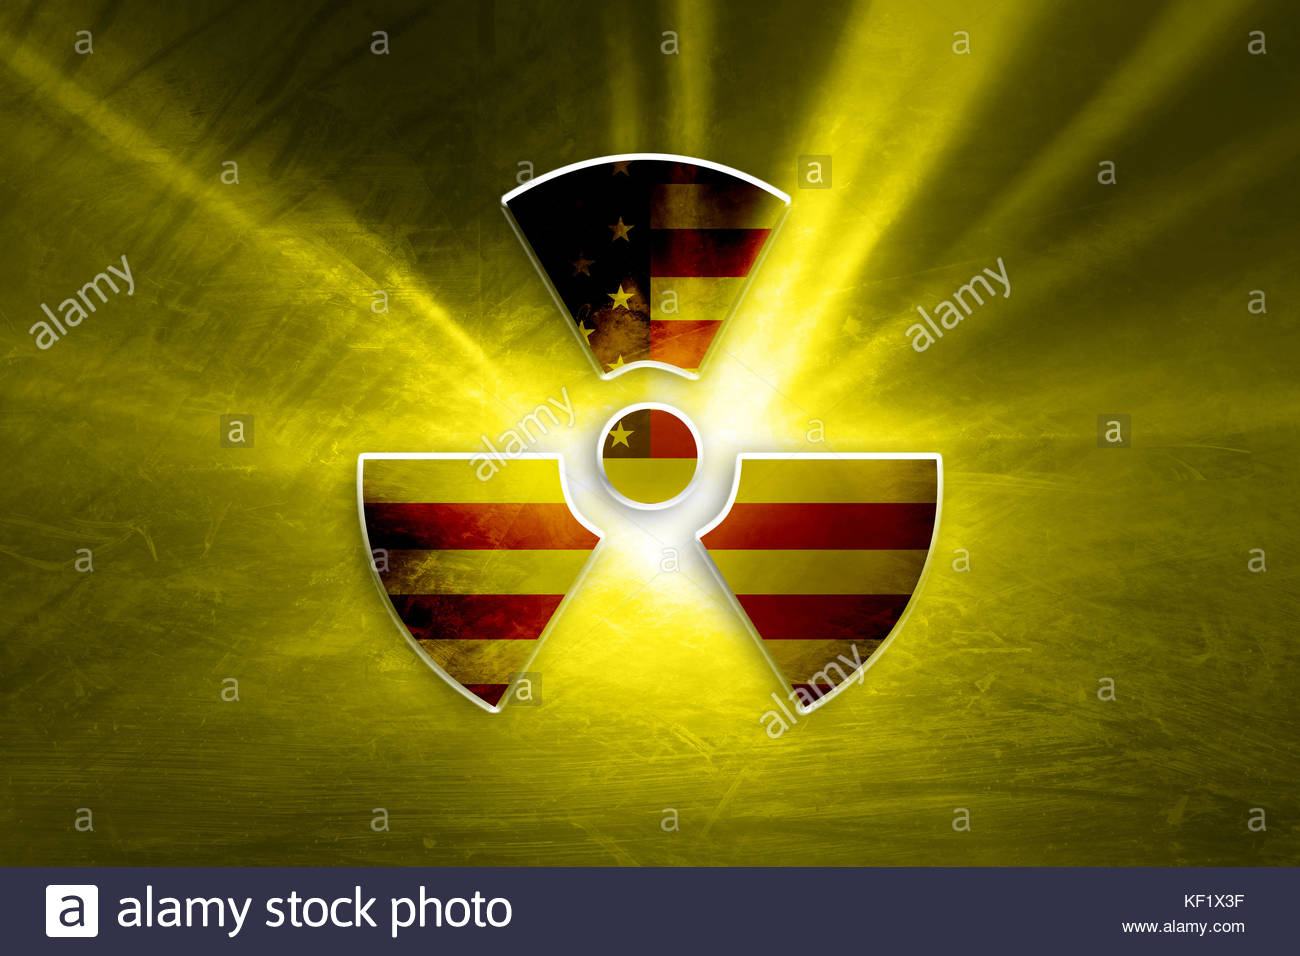 Radioactive Symbol Stock Photos Radioactive Symbol Stock Images